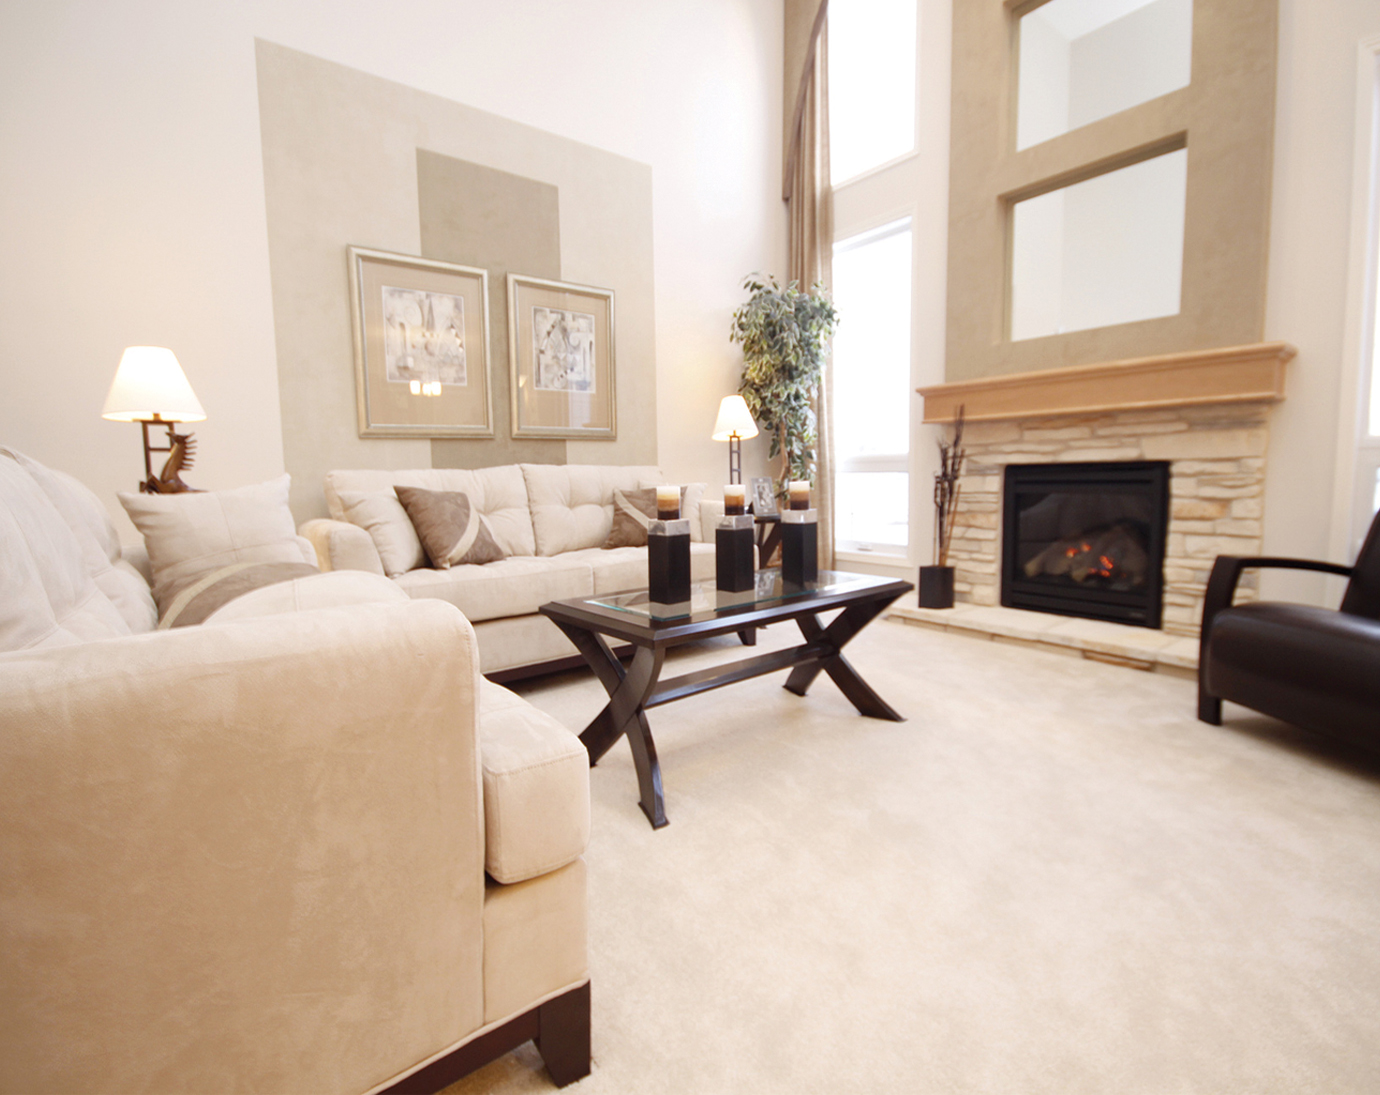 White Berber Carpet In Living Room Flooring (Image 10 of 10)